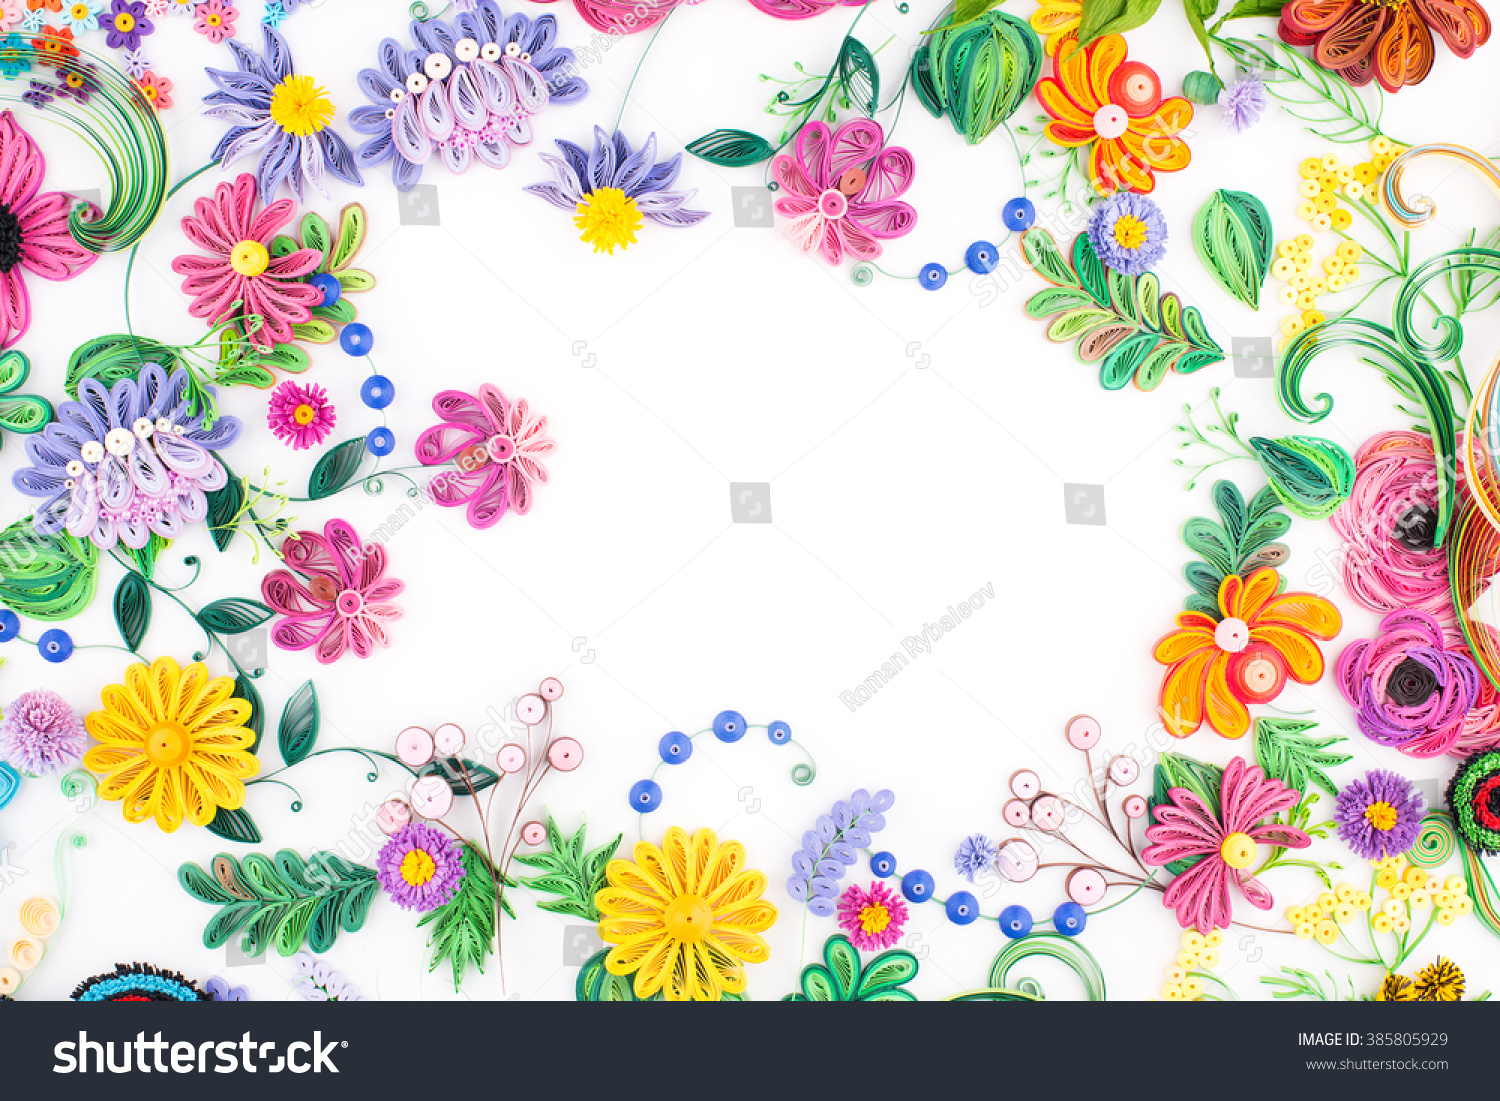 Paper Quillingcolorful Paper Flowers Stock Photo Royalty Free